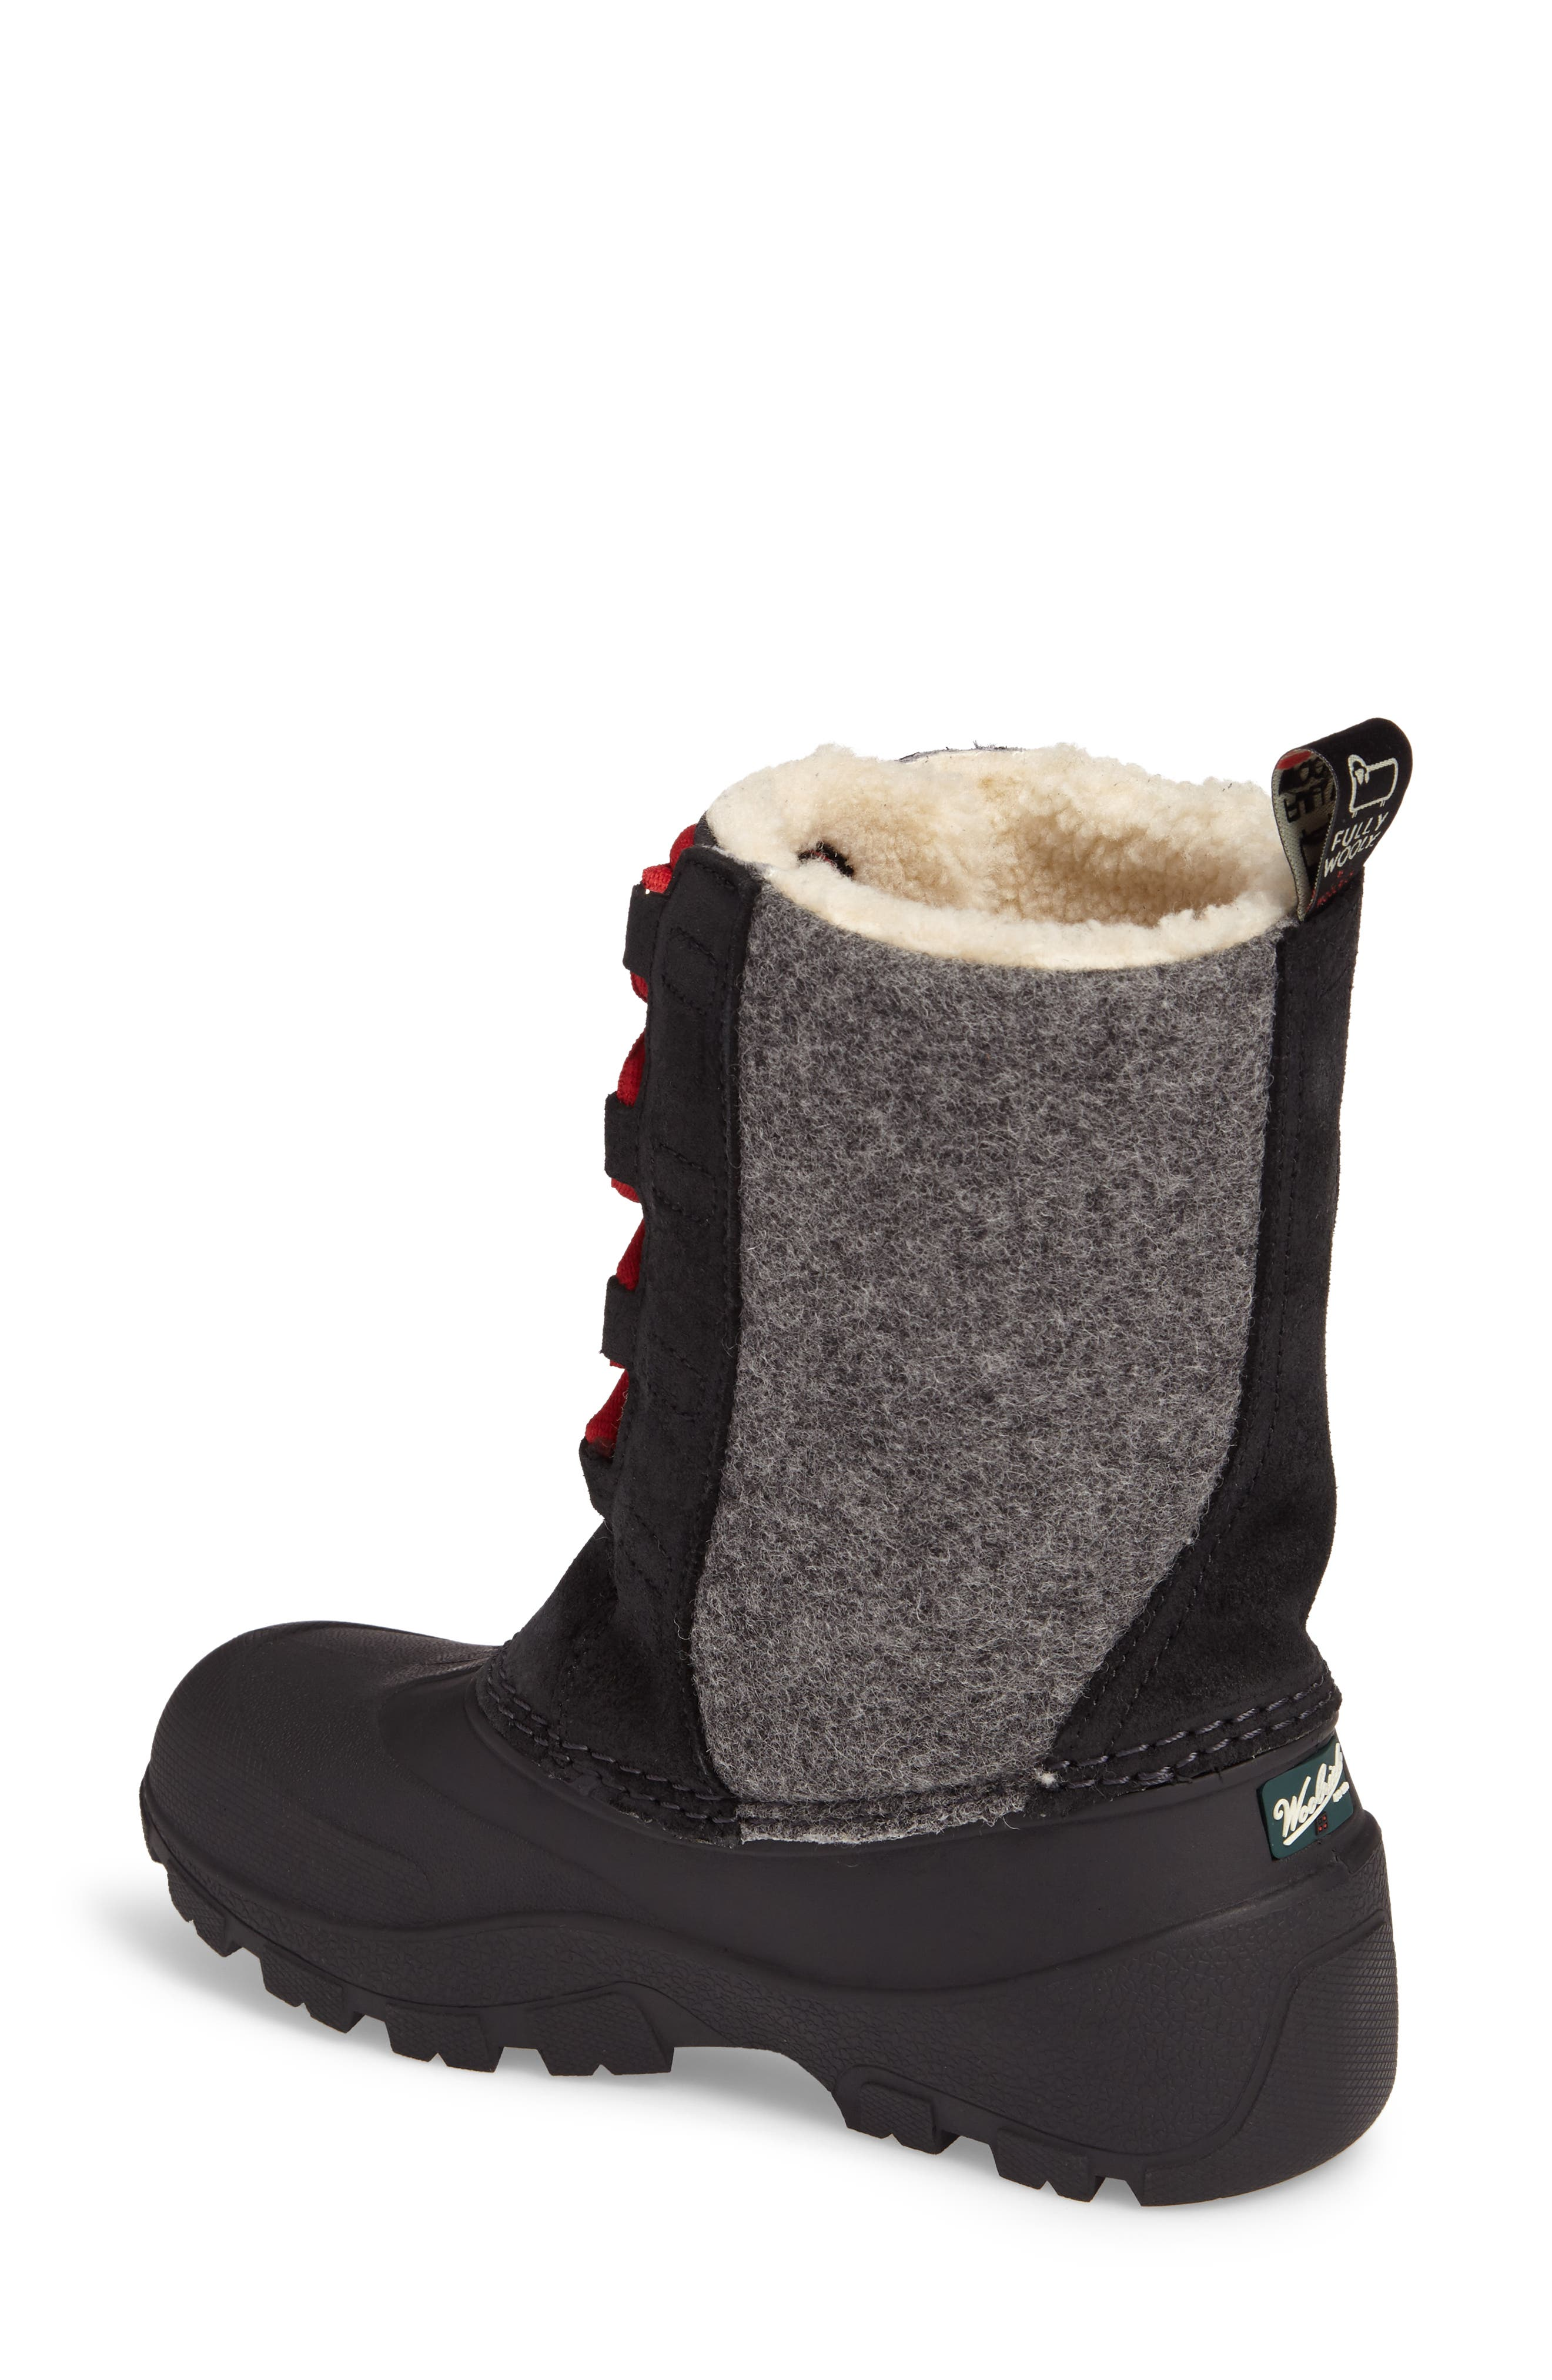 Fully Wooly Tundracat Waterproof Insulated Winter Boot,                             Alternate thumbnail 2, color,                             Black Leather